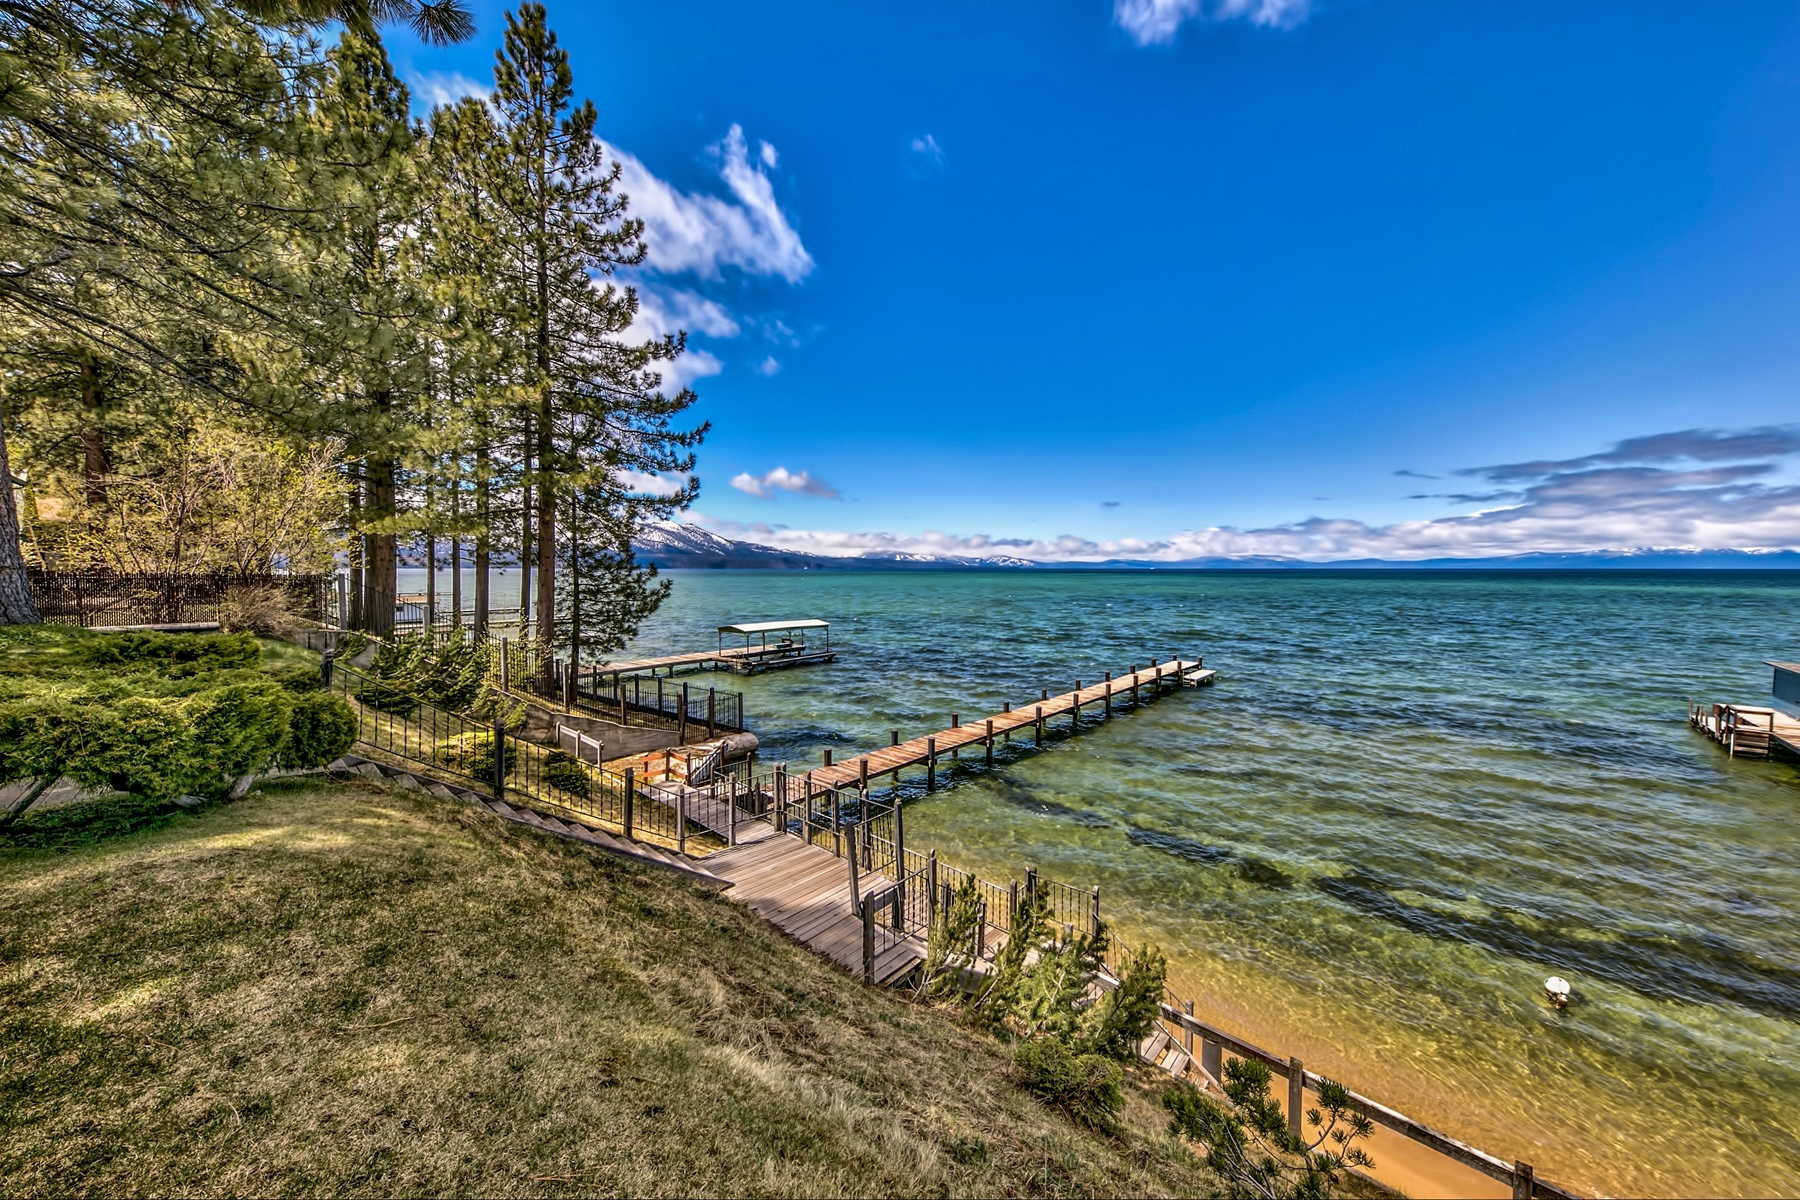 single family homes 为 销售 在 765 Lakeview Ave, South Lake Tahoe, CA 96150 765 Lakeview Ave 南太浩湖, 加利福尼亚州 91711 美国